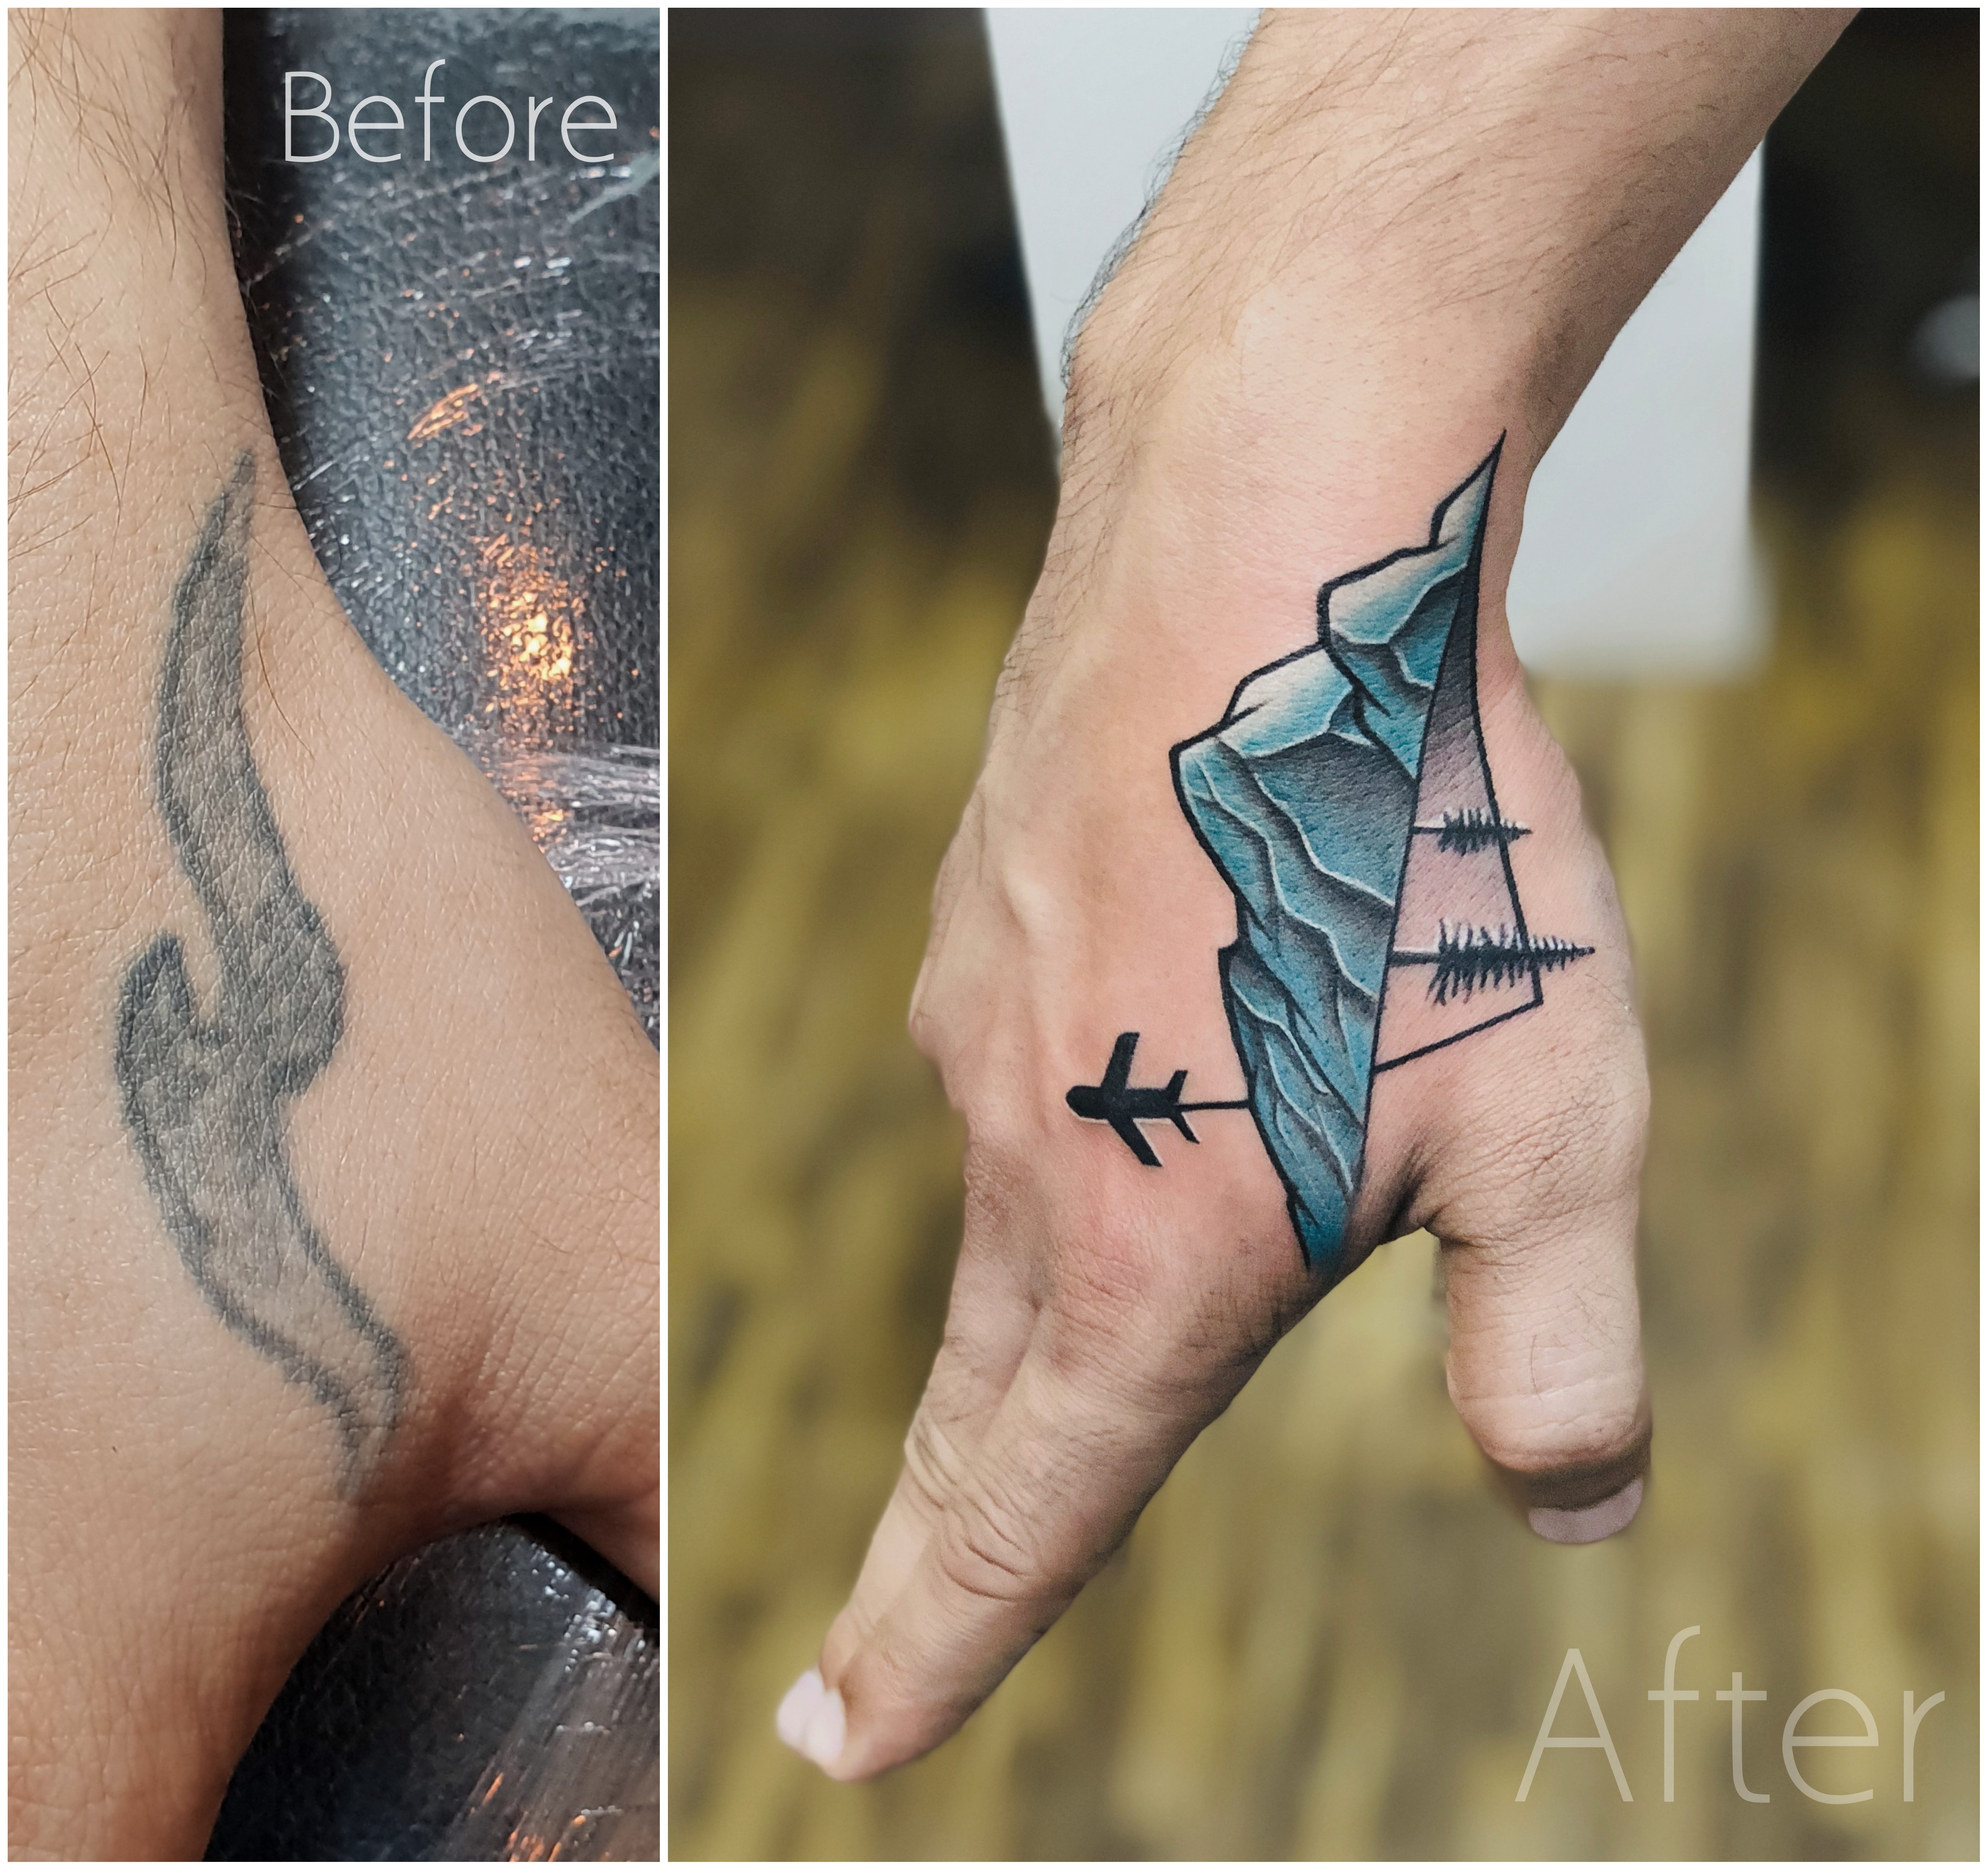 Plane Tattoo/ Mountain Tattoo/ Travel Tattoo Coverup Travelling Tattoo pixlr